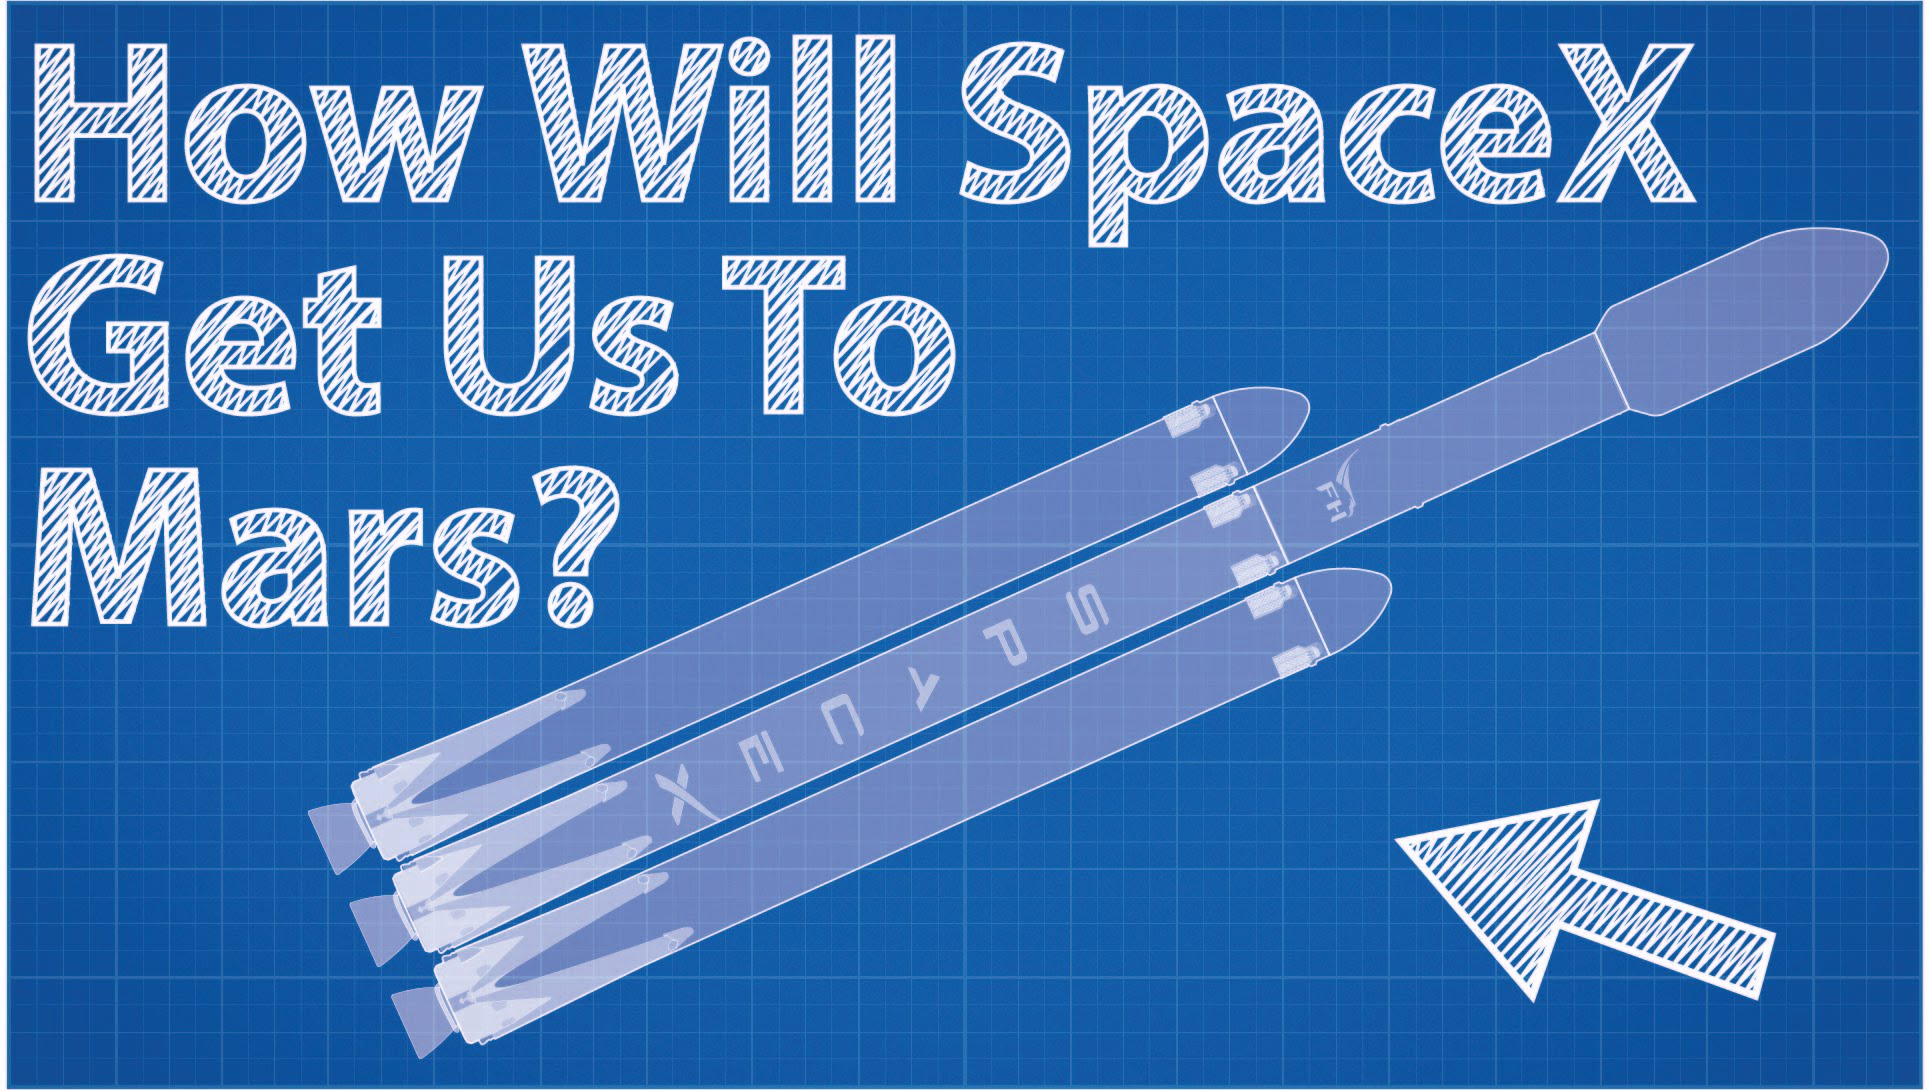 How Will SpaceX Get Us To Mars for Much Cheaper?